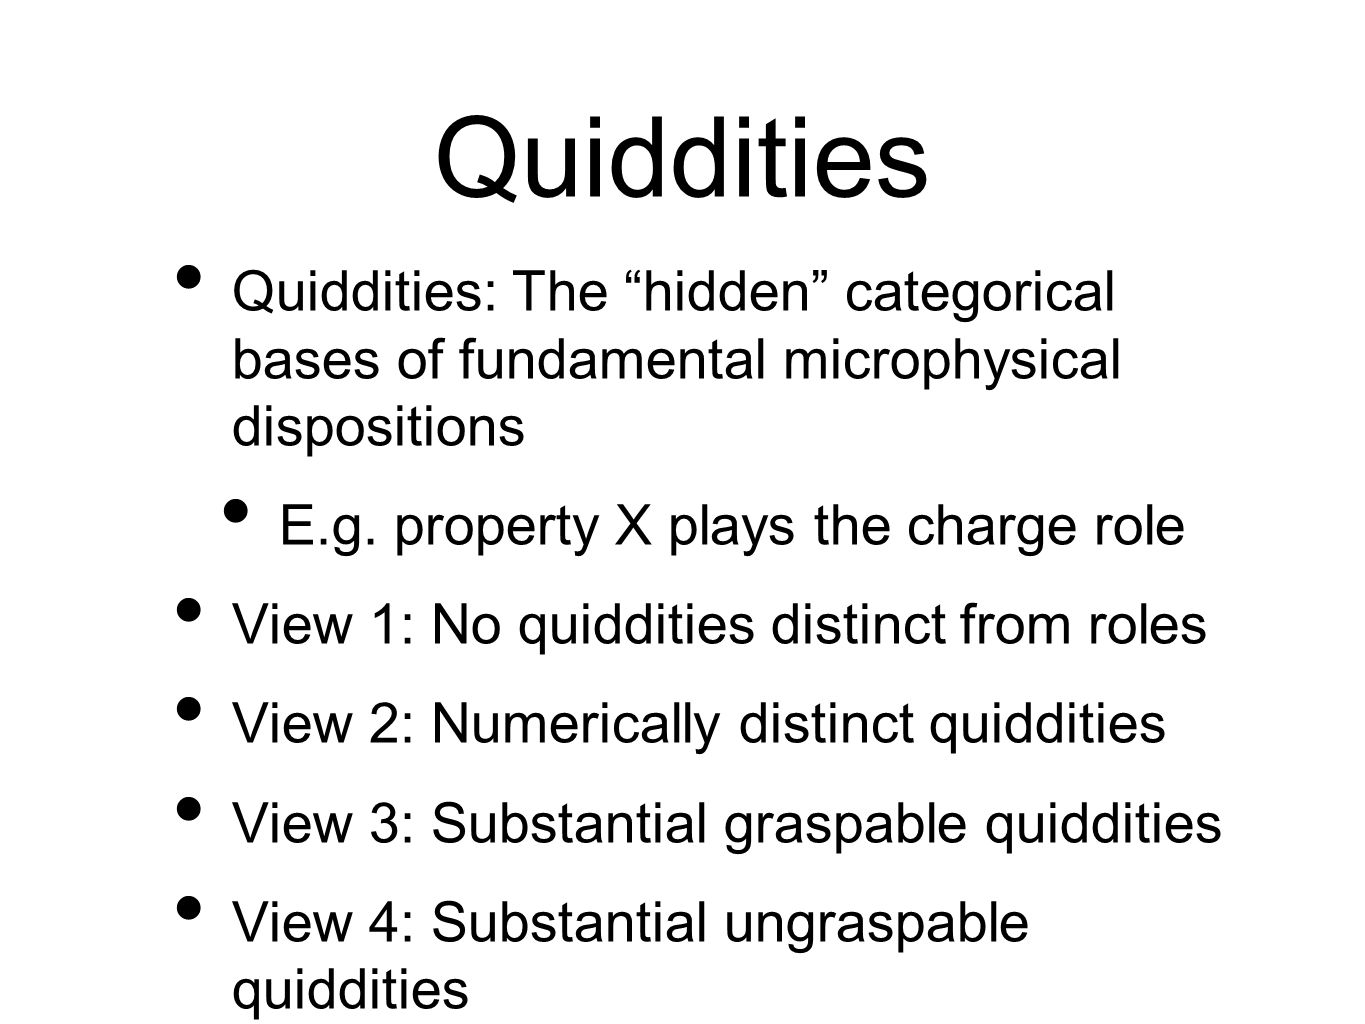 Quiddities Quiddities: The hidden categorical bases of fundamental microphysical dispositions. E.g. property X plays the charge role.